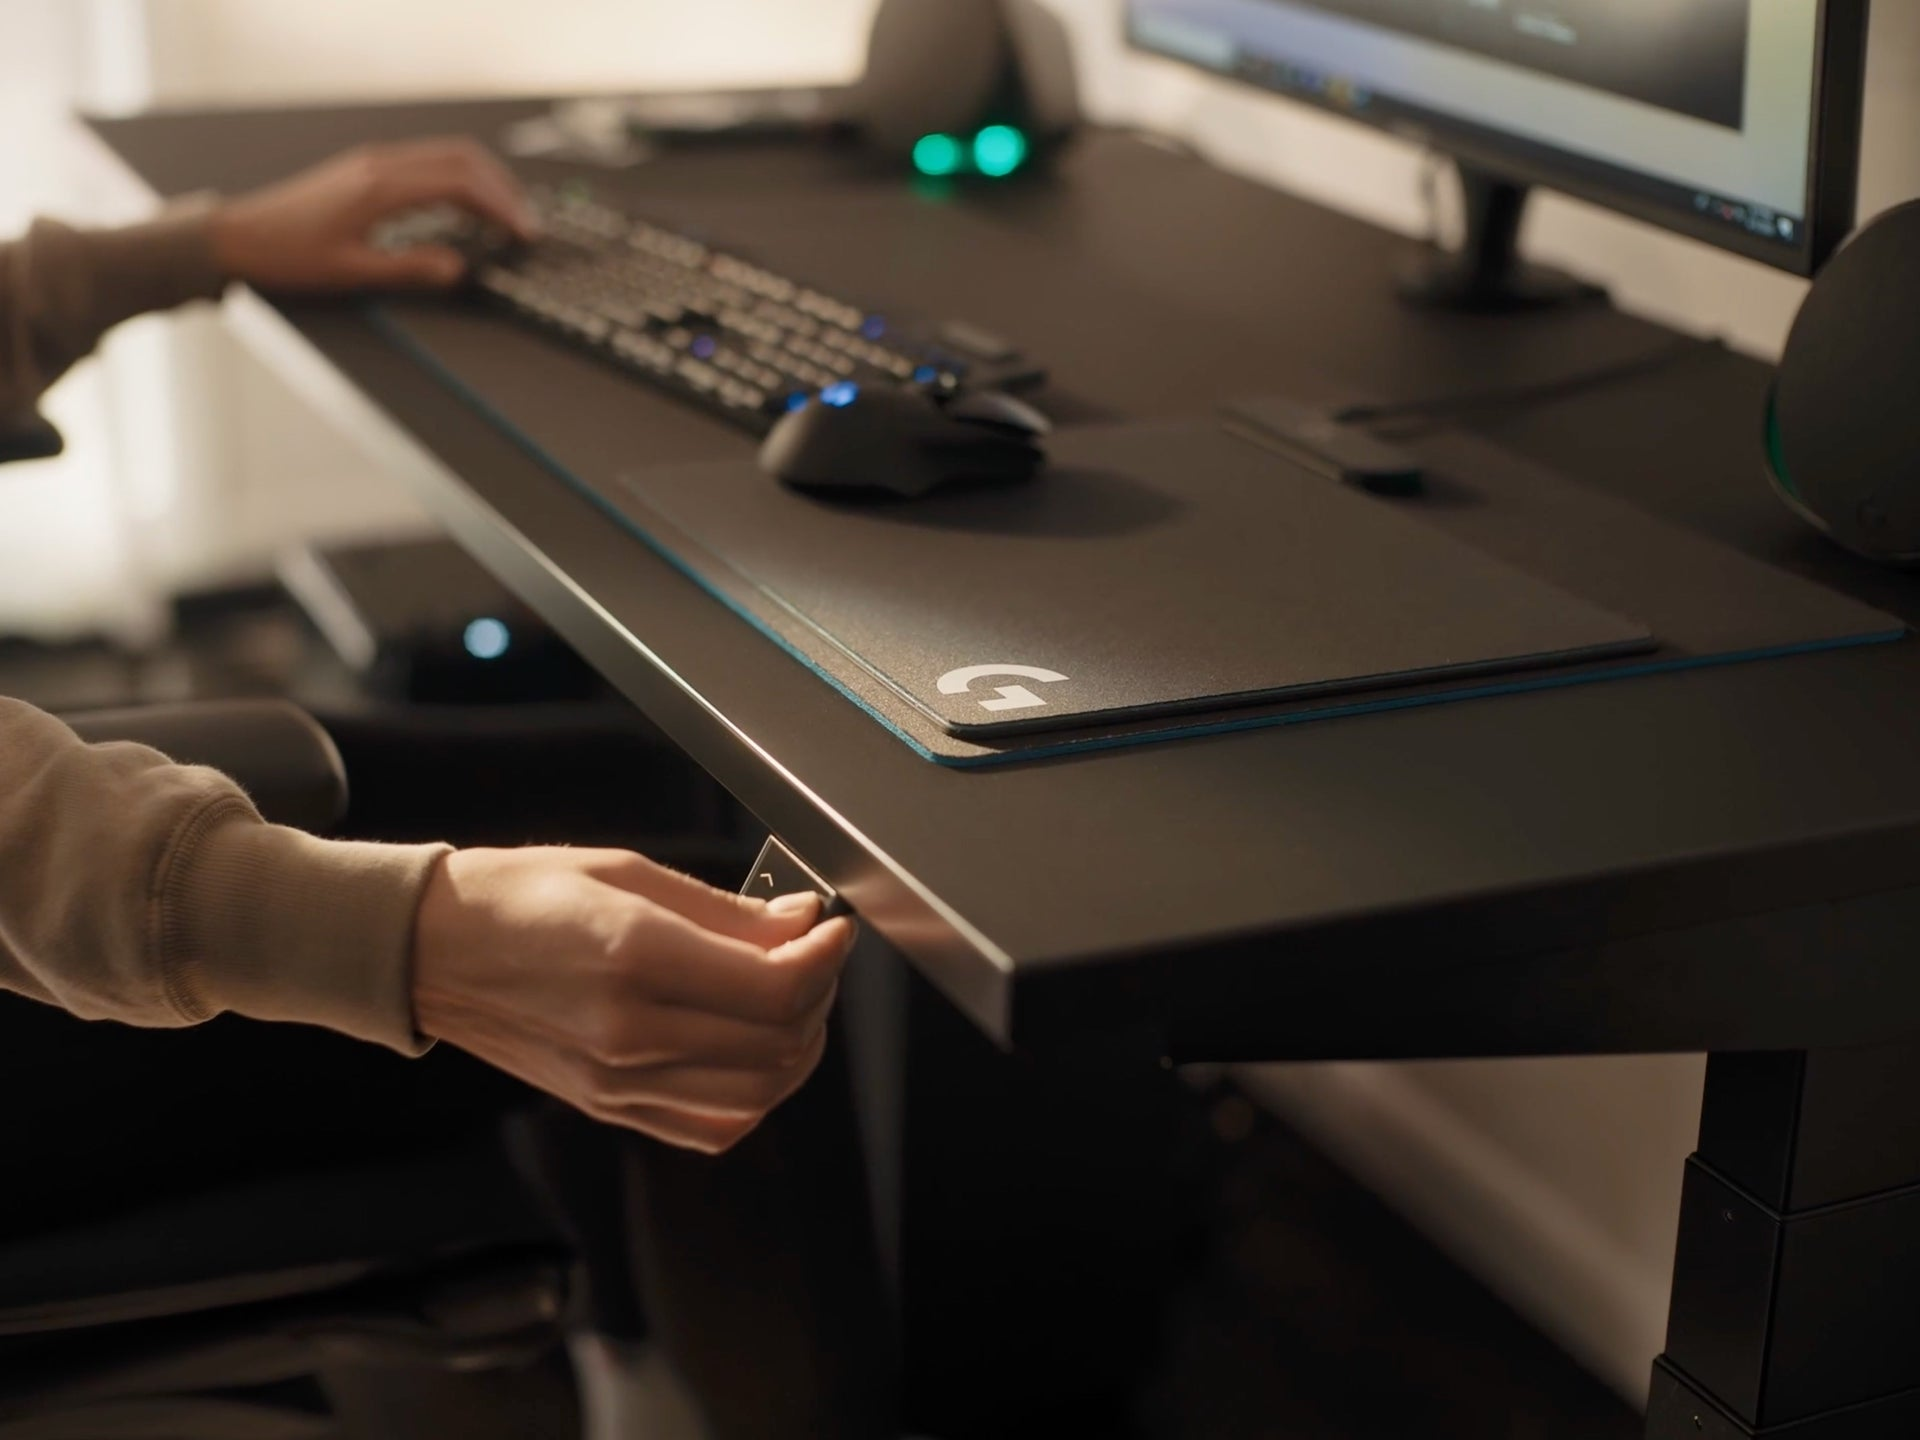 A video features a hand pressing on the lit-up switch on the Nevi Gaming Desk, which raises or lowers its height.